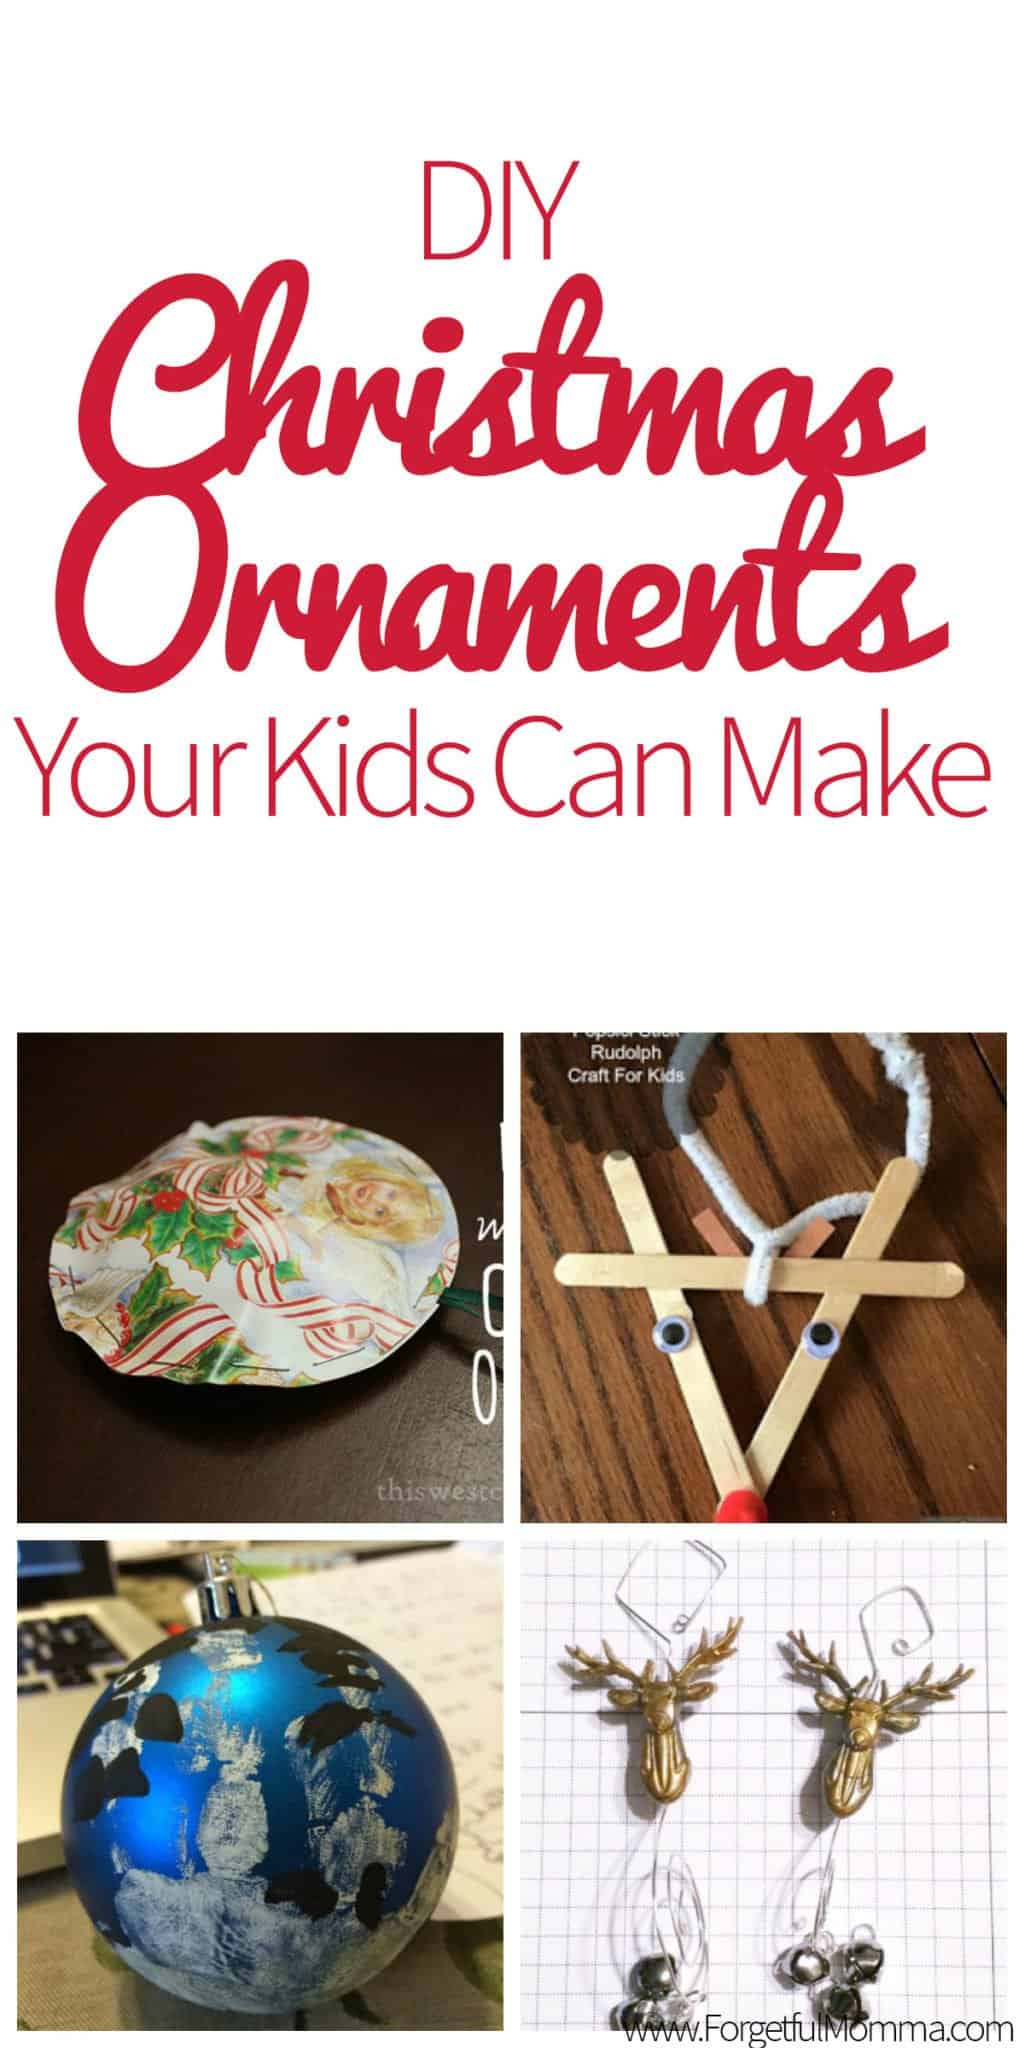 Diy Christmas Ornaments Your Kids Can Make Forgetful Momma